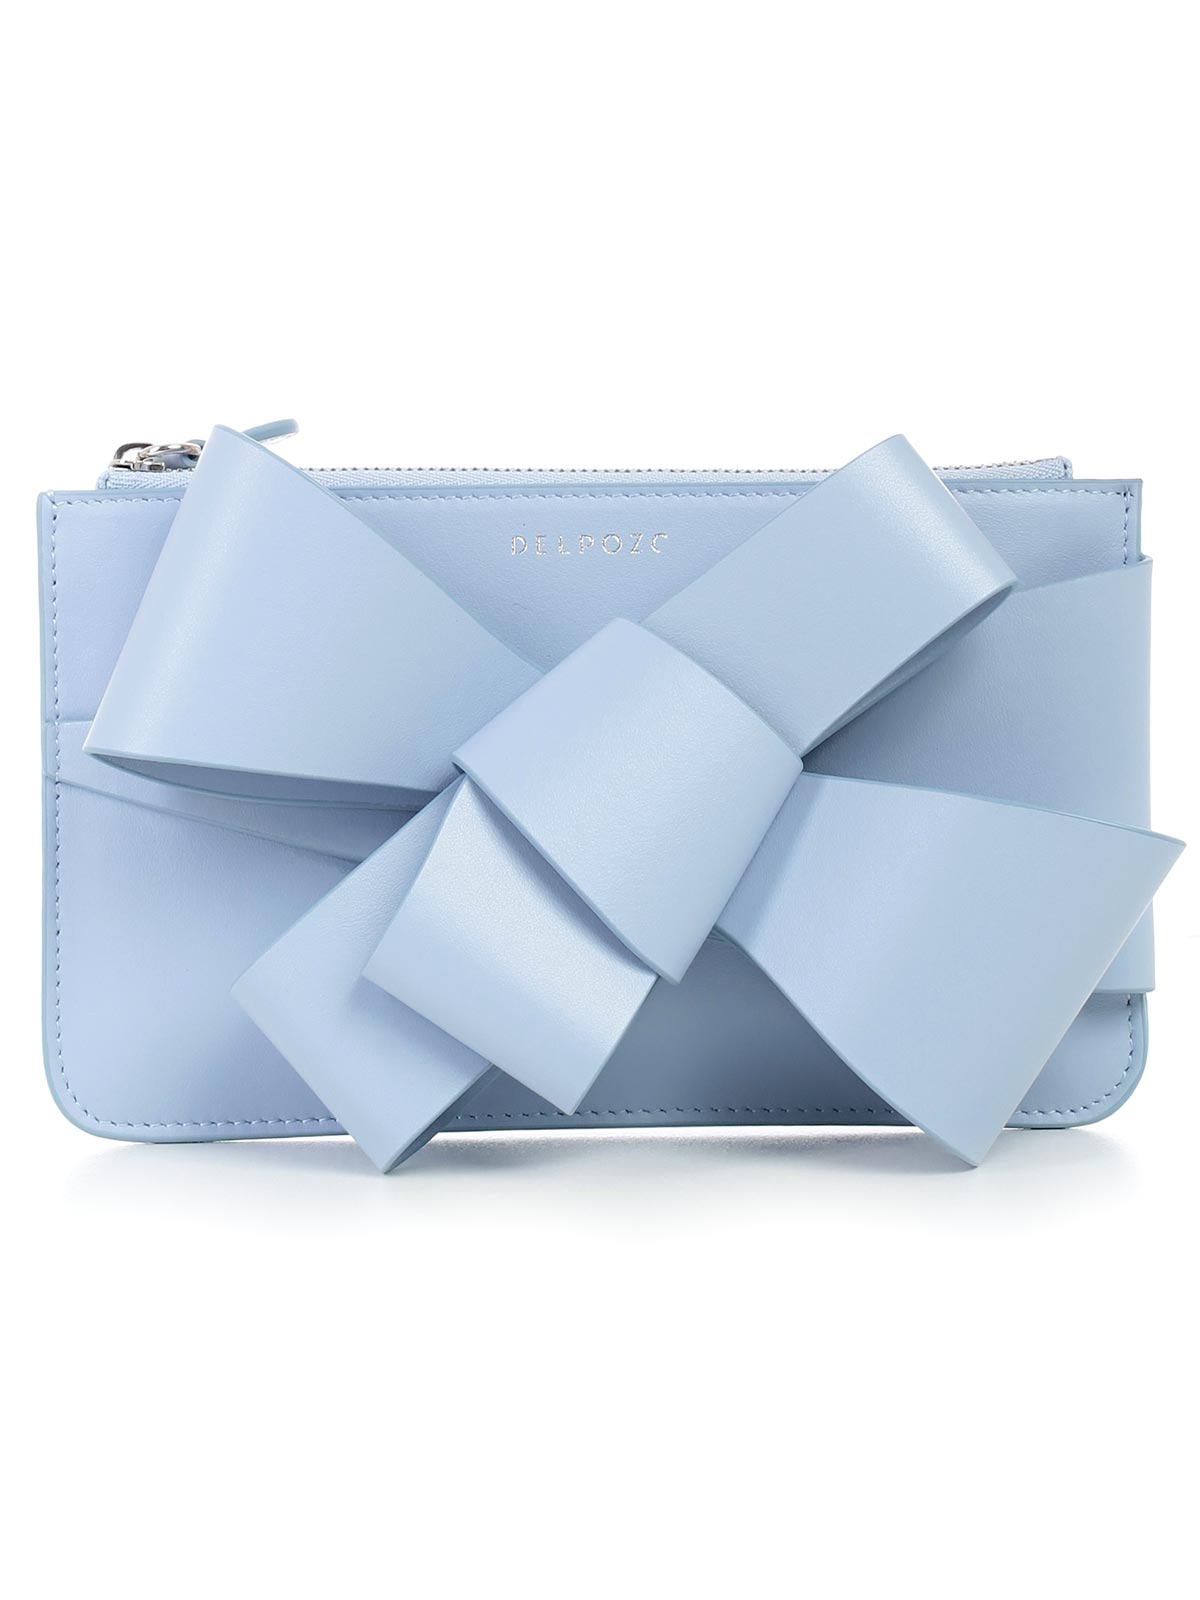 Picture of Delpozo Clutches